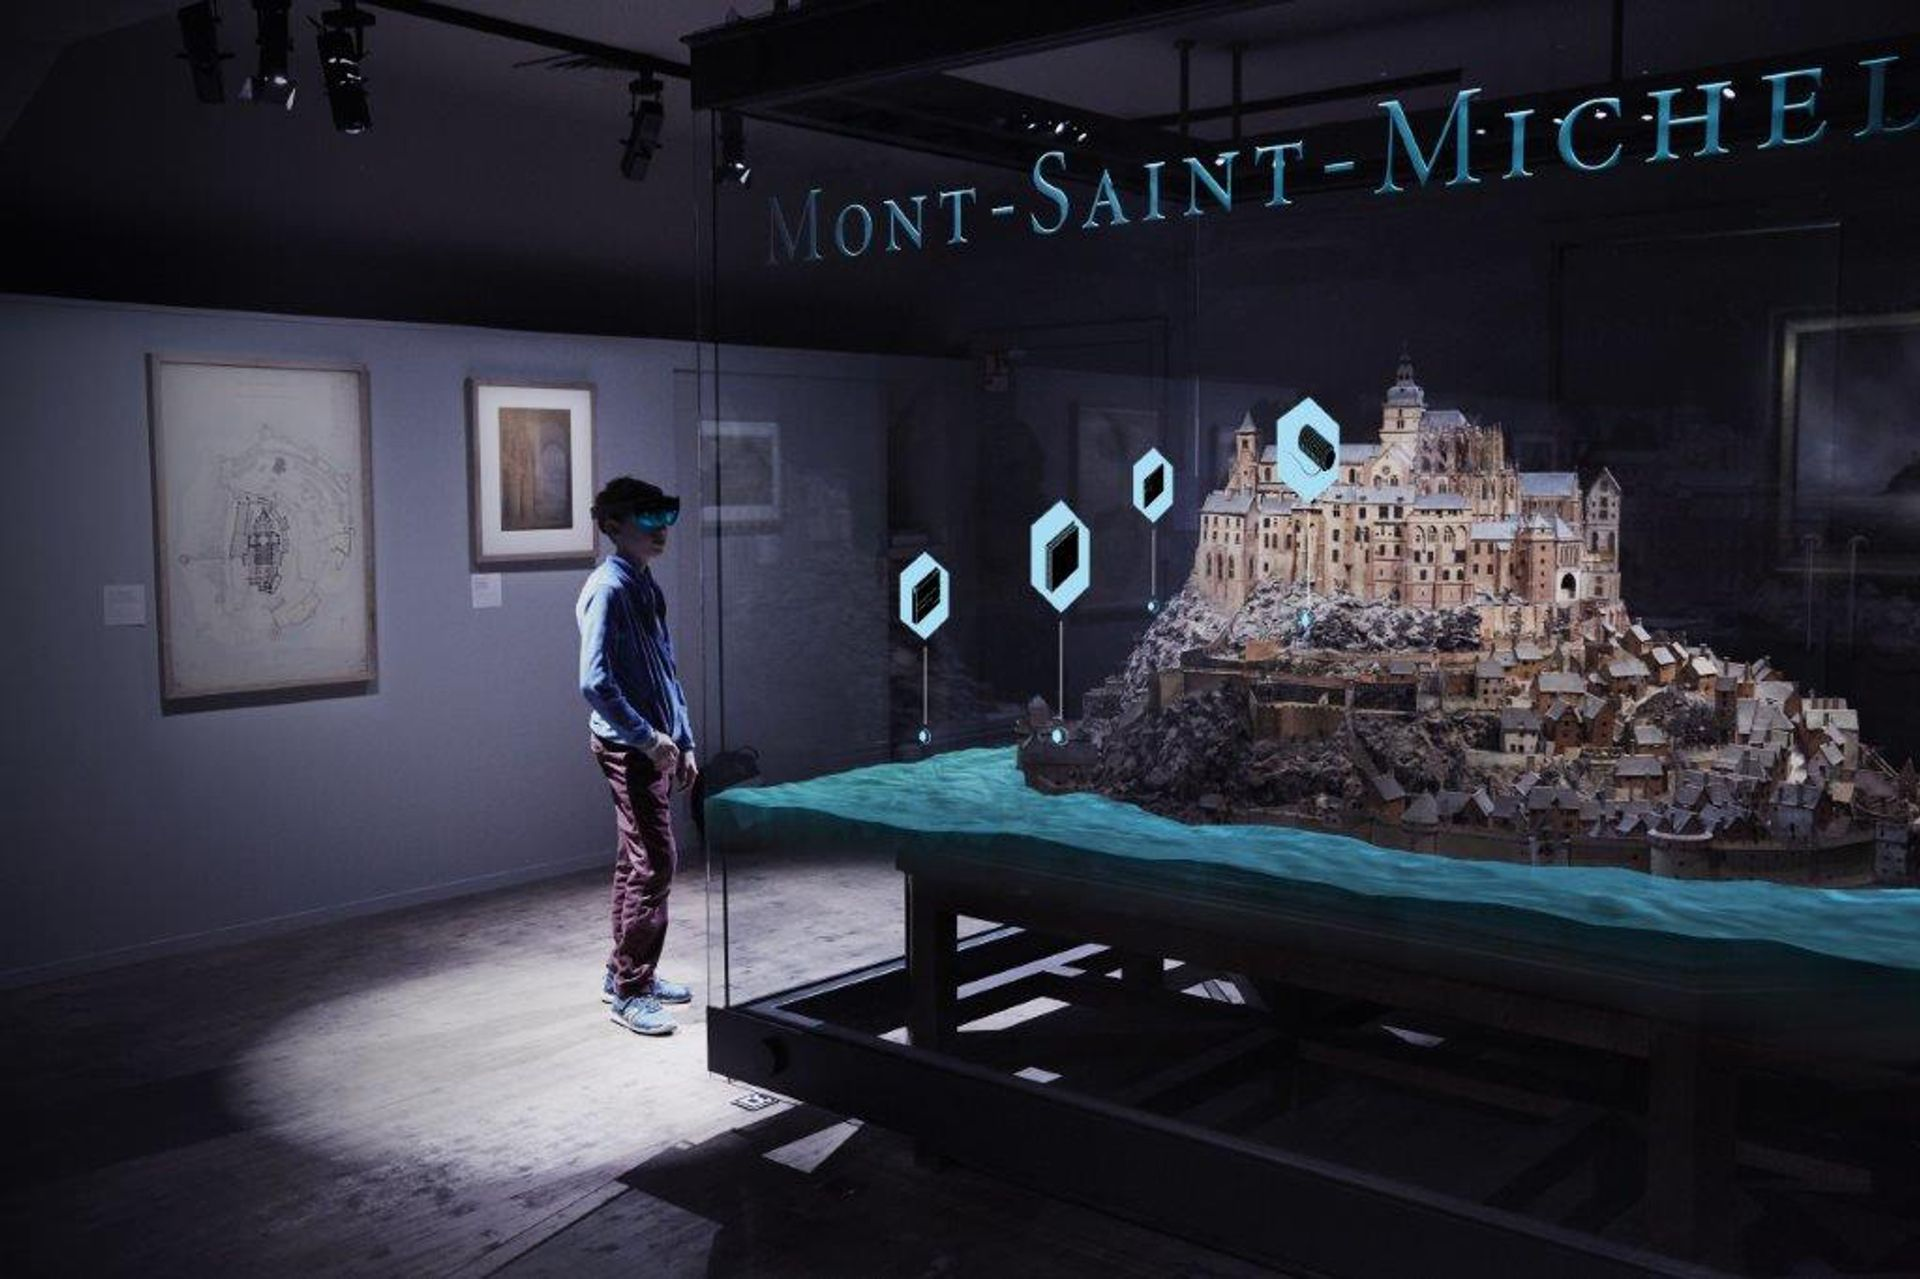 A 3D relief map of Mont Saint-Michel that Microsoft and partners brought to life through mixed-media technology at the Musée des Plans-Reliefs in Paris.